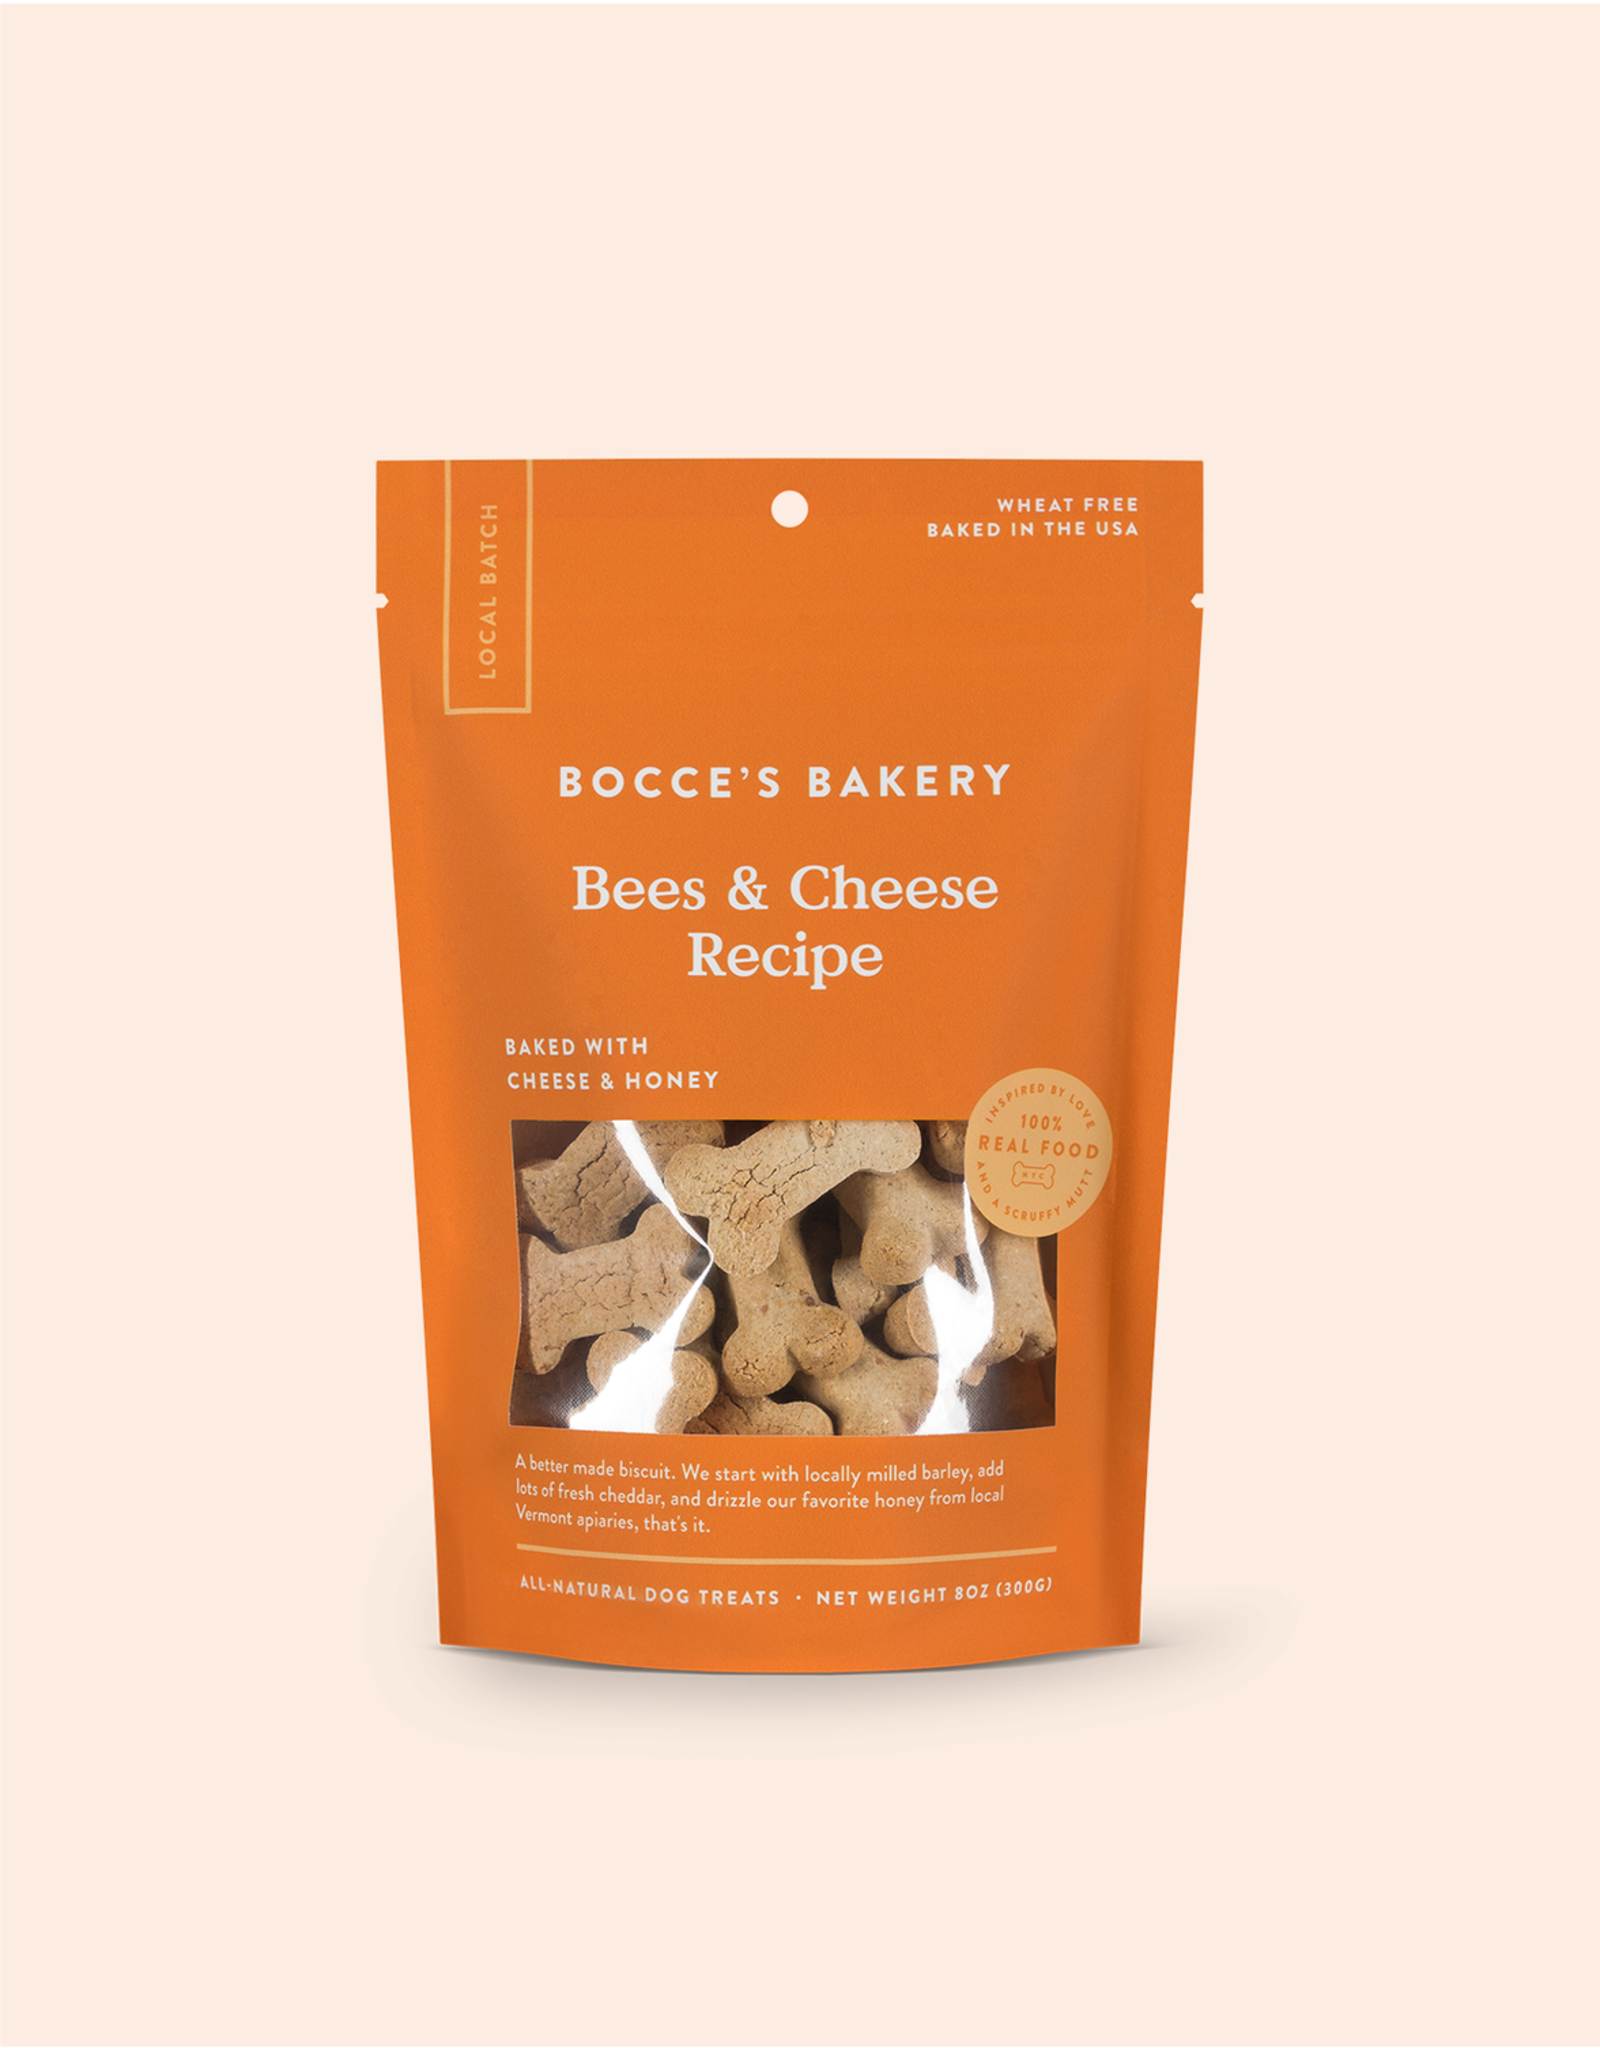 Bocce's Bakery Bocce's Bakery Small Batch Biscuits